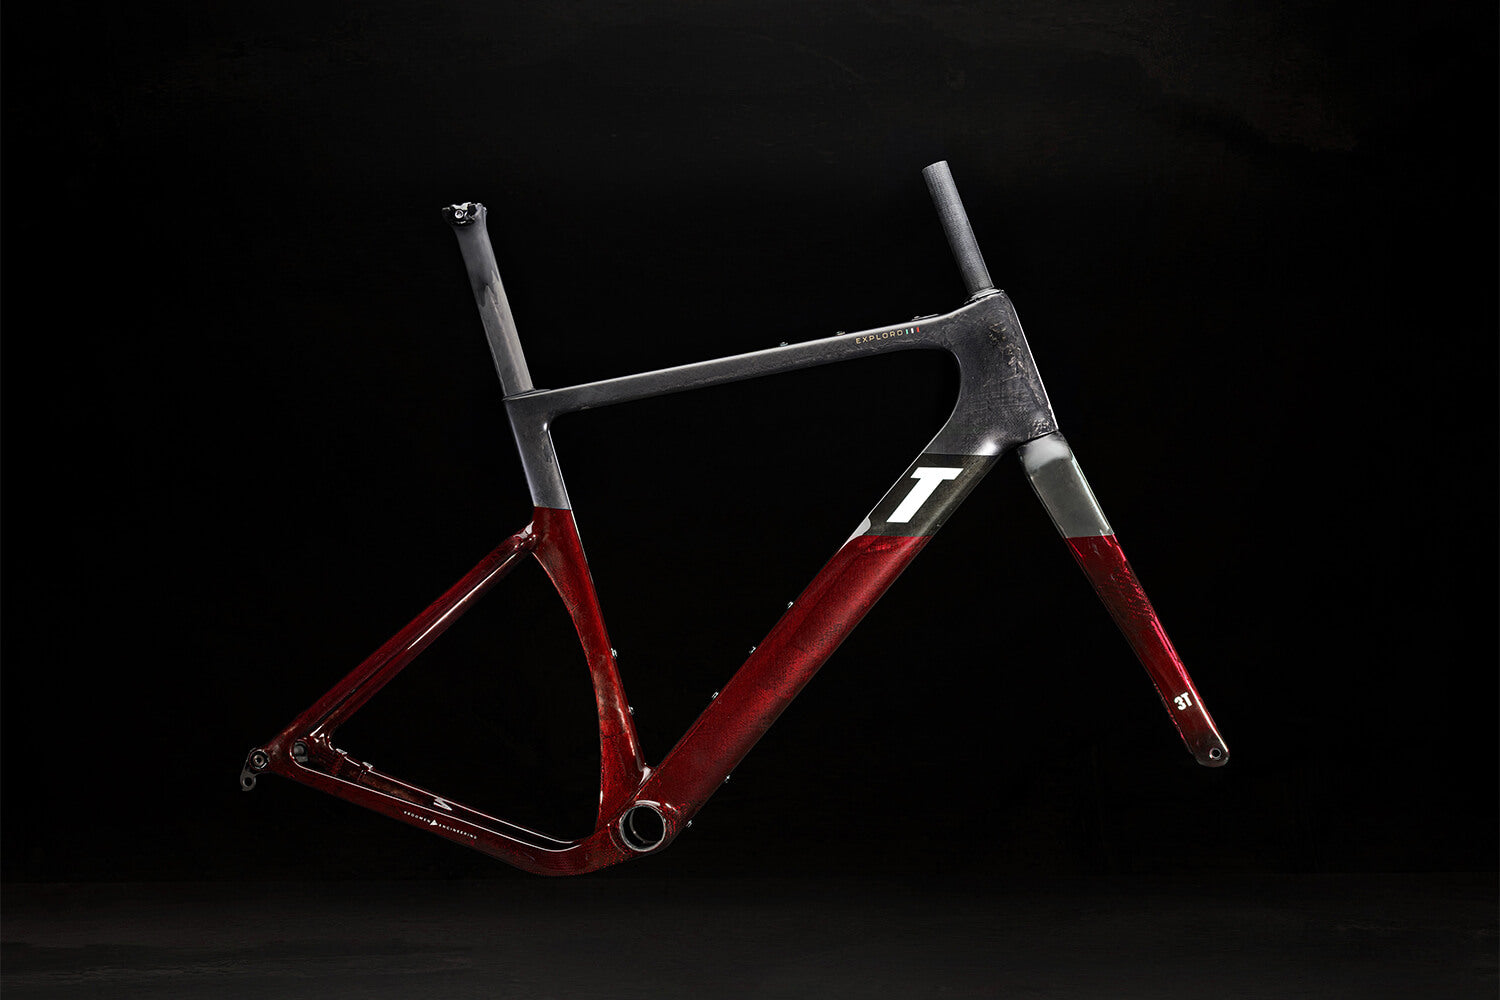 3t exploro racemax italia founder's edition at contender bicycles